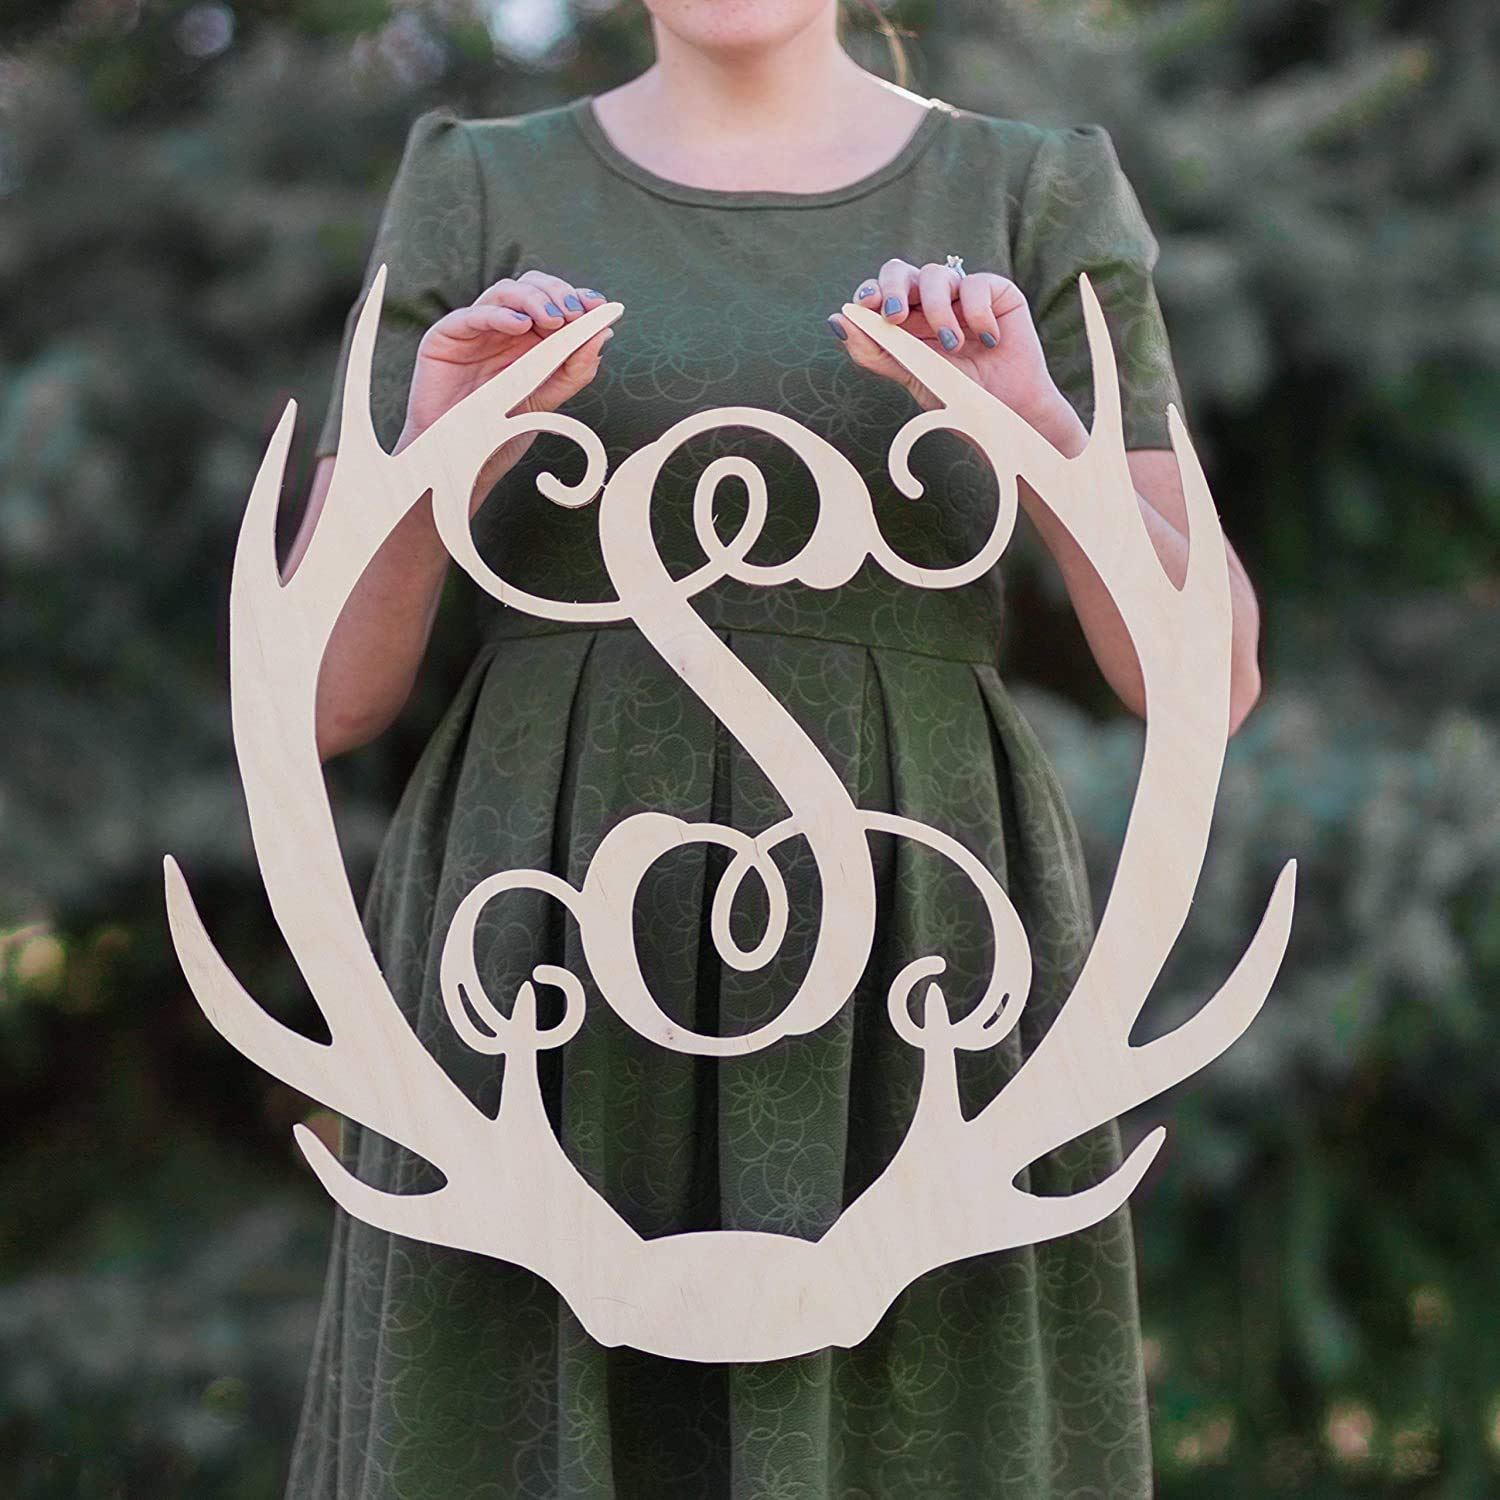 SALE Bombing free shipping 12-36 Max 67% OFF inch tall Wooden ANTLER Monogram Letters Room De Vine